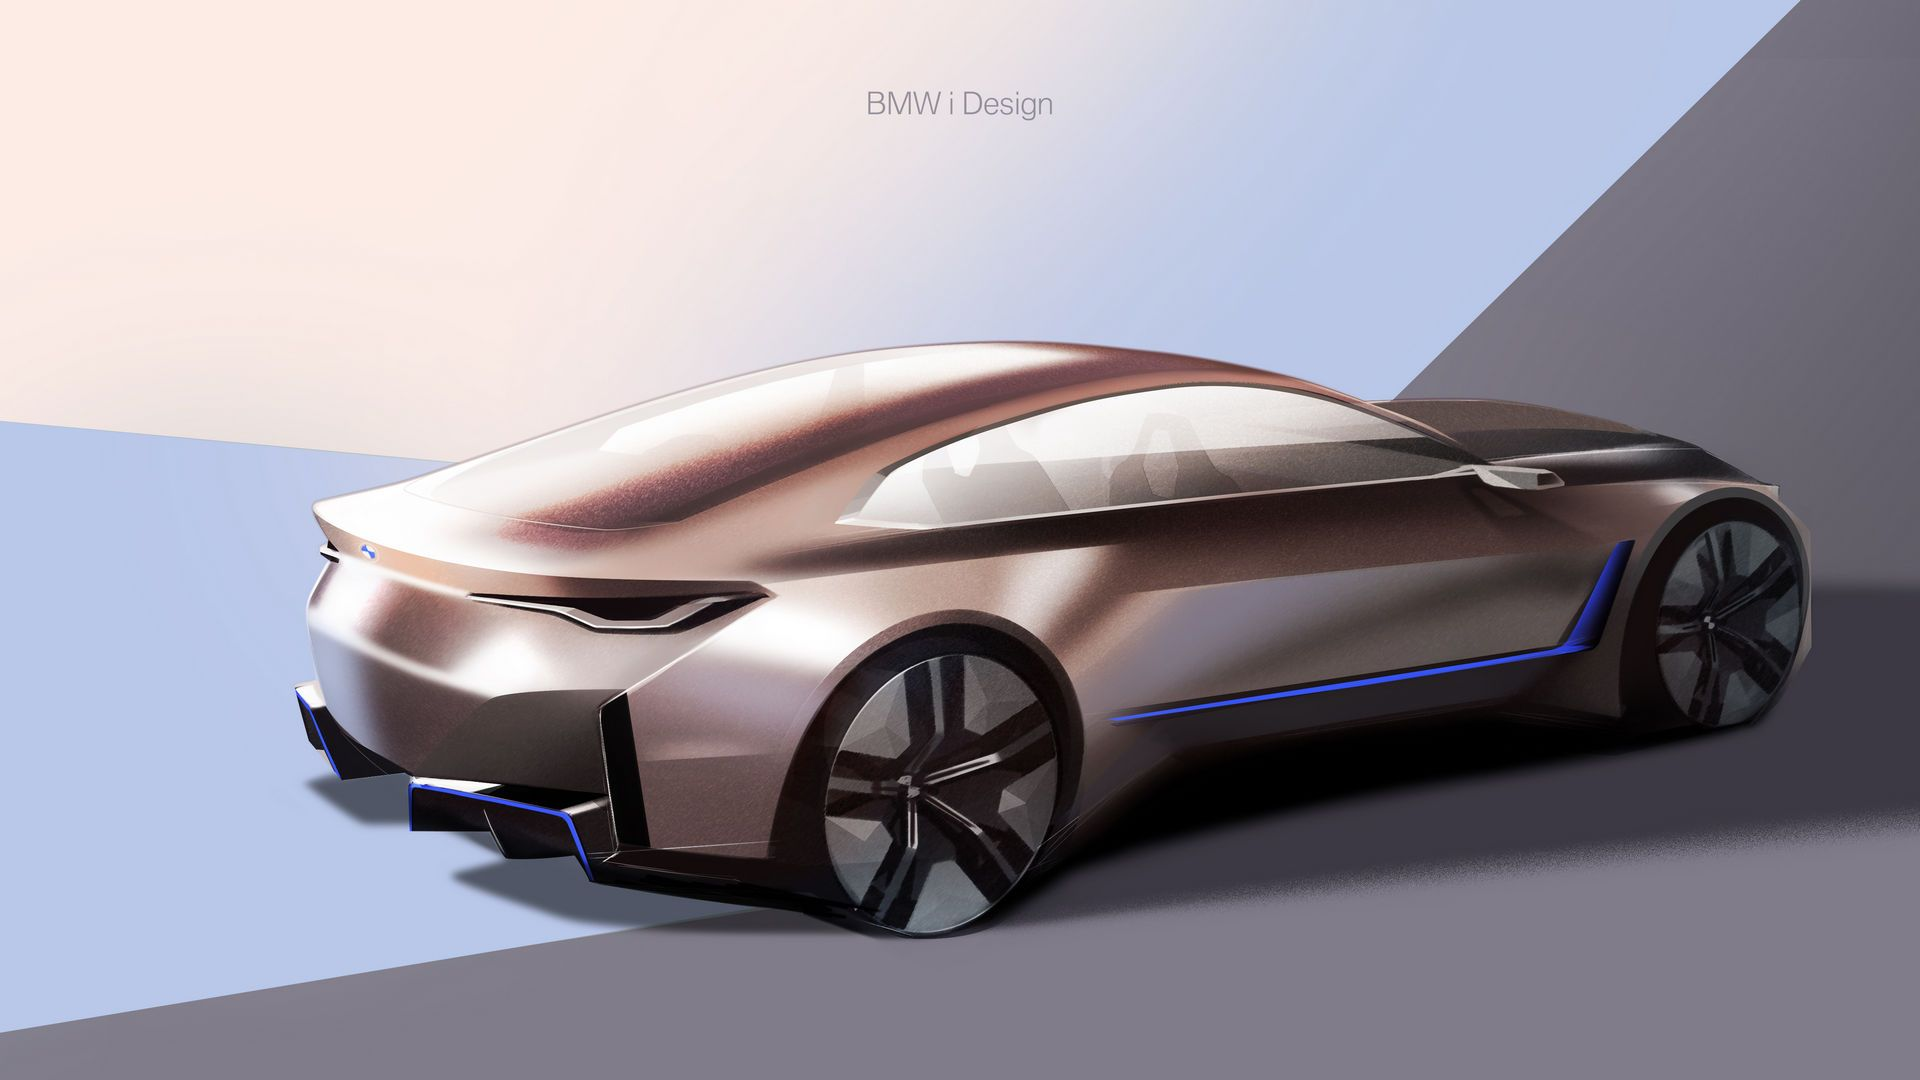 Bmw Concept I4 Previews Production Model Coming In 2021 Carscoops In 2020 Bmw Concept Bmw Design Bmw